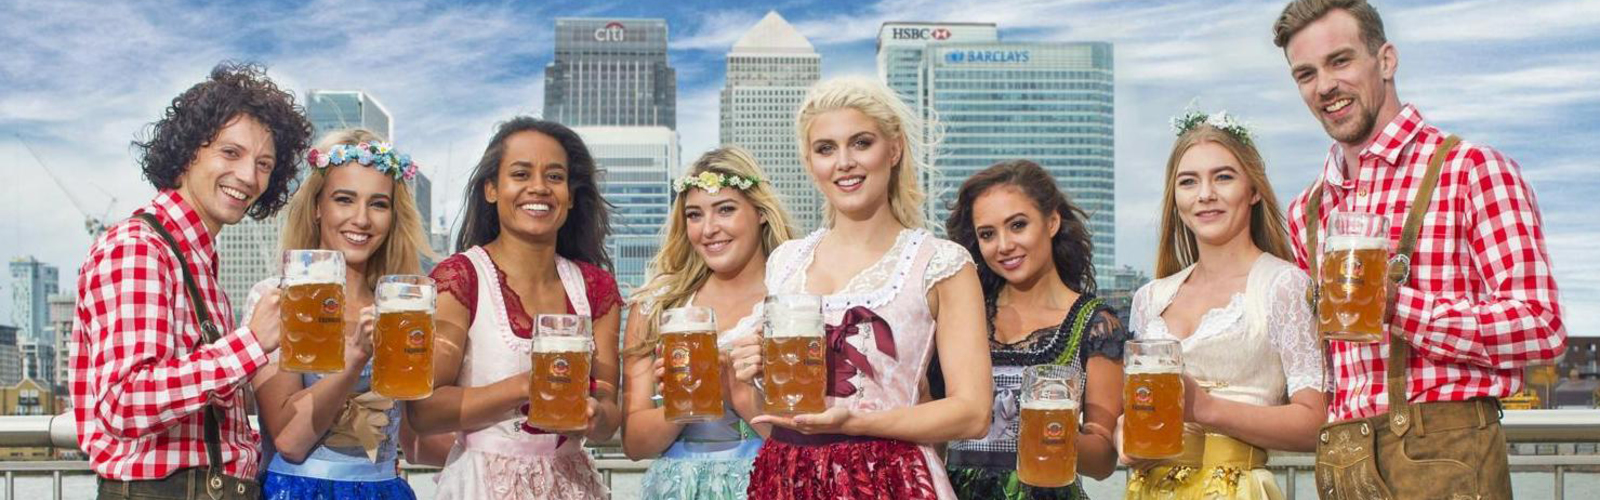 Do you think Oktoberfest is about mature women bosoms?